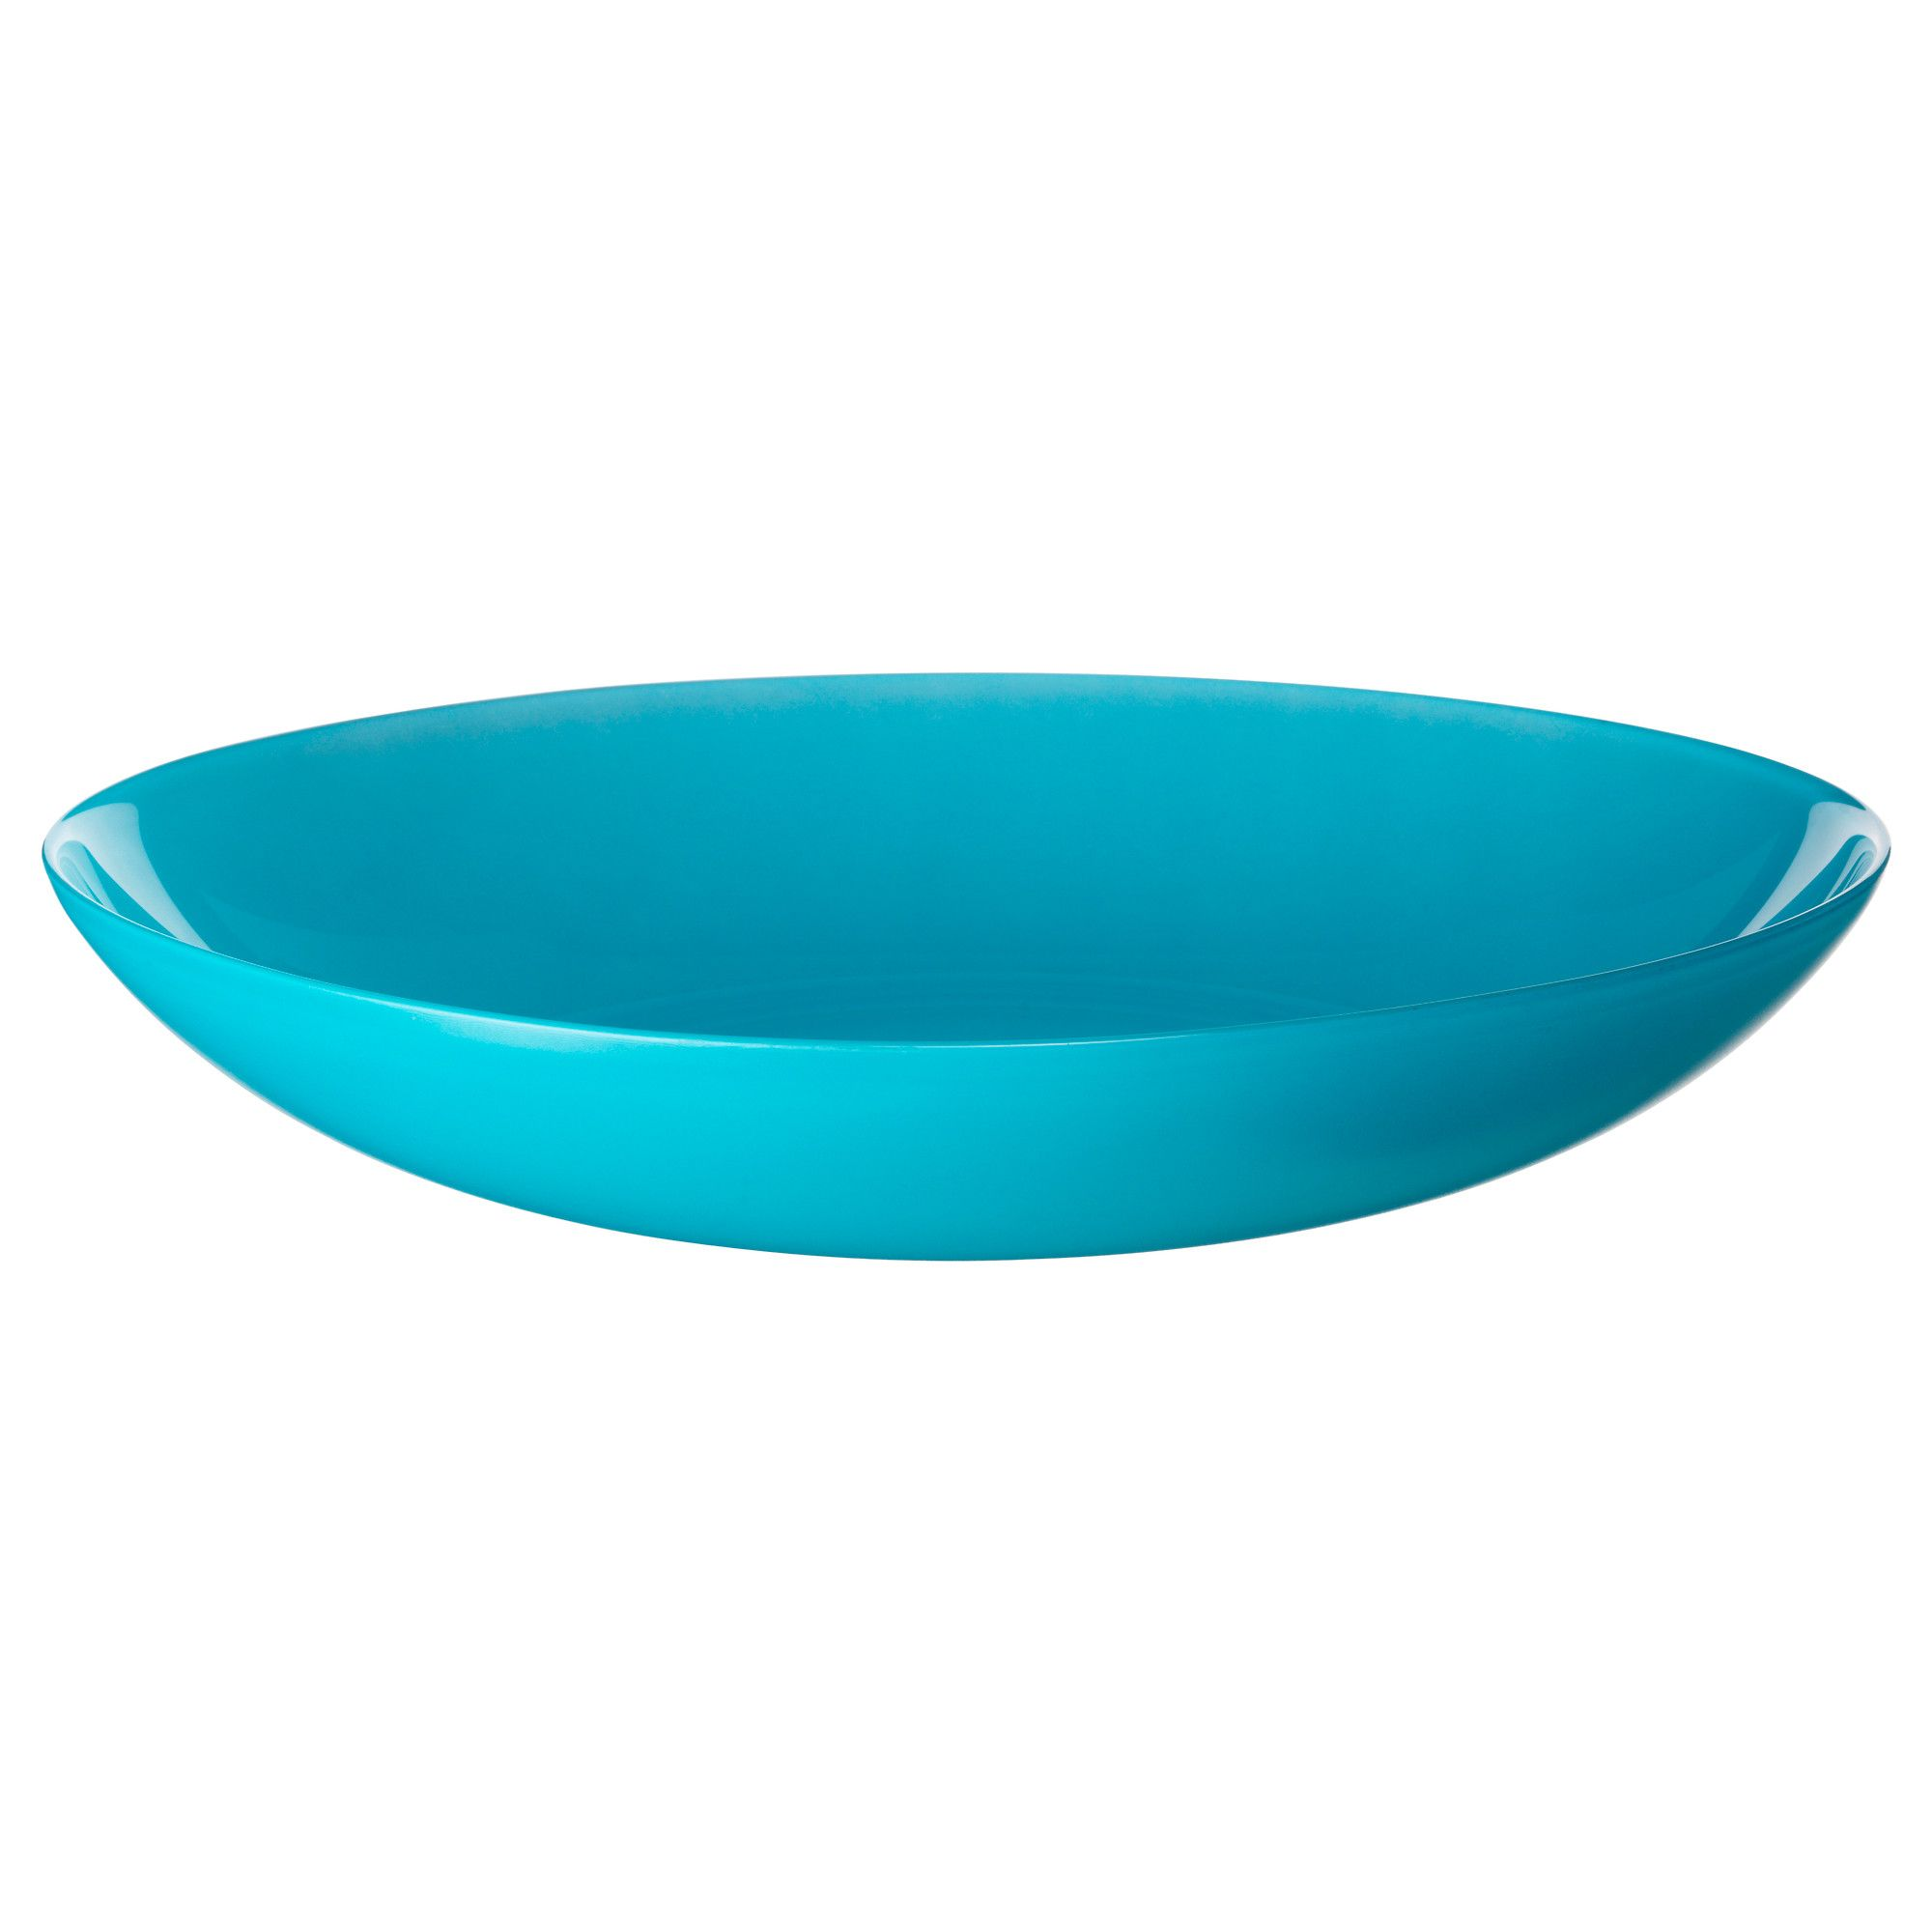 Ikea GODTA plates and bowls | Furniture | Pinterest | Bowls and Dining